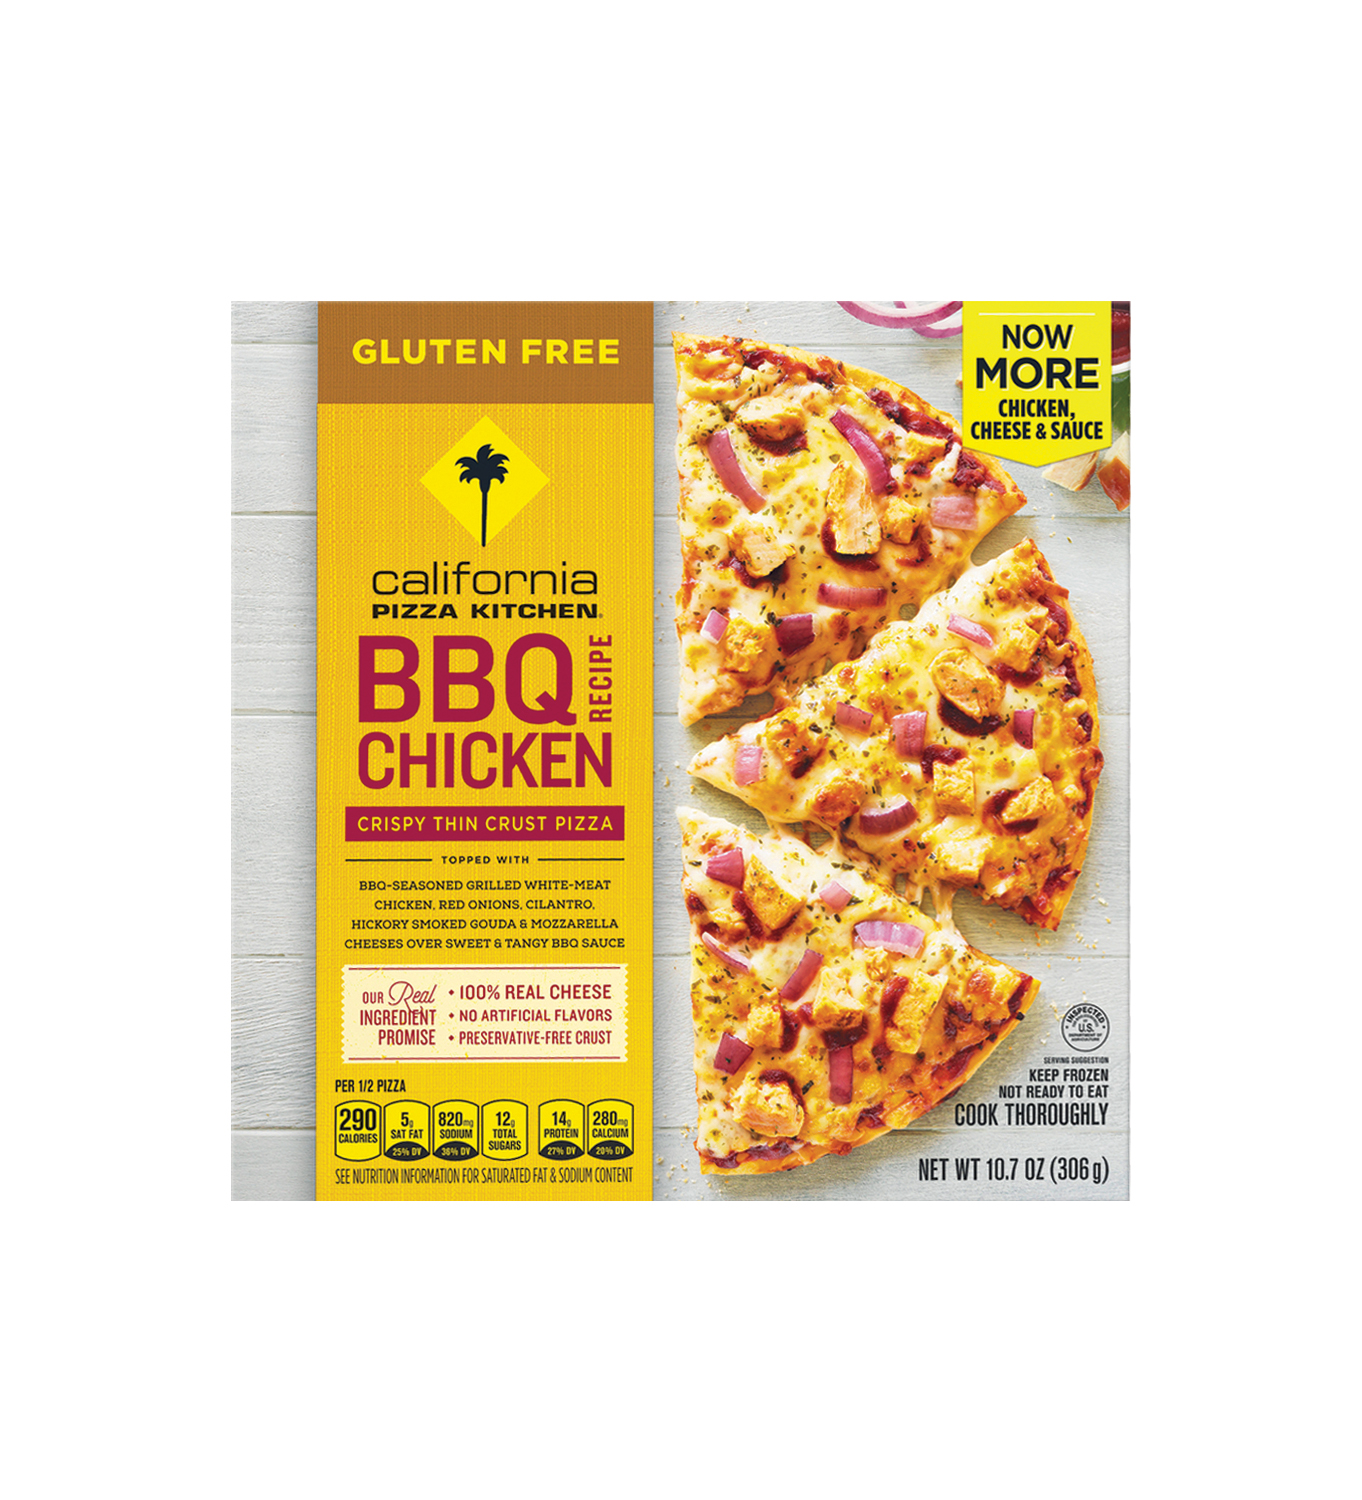 California Pizza Kitchen Gluten-Free BBQ Chicken